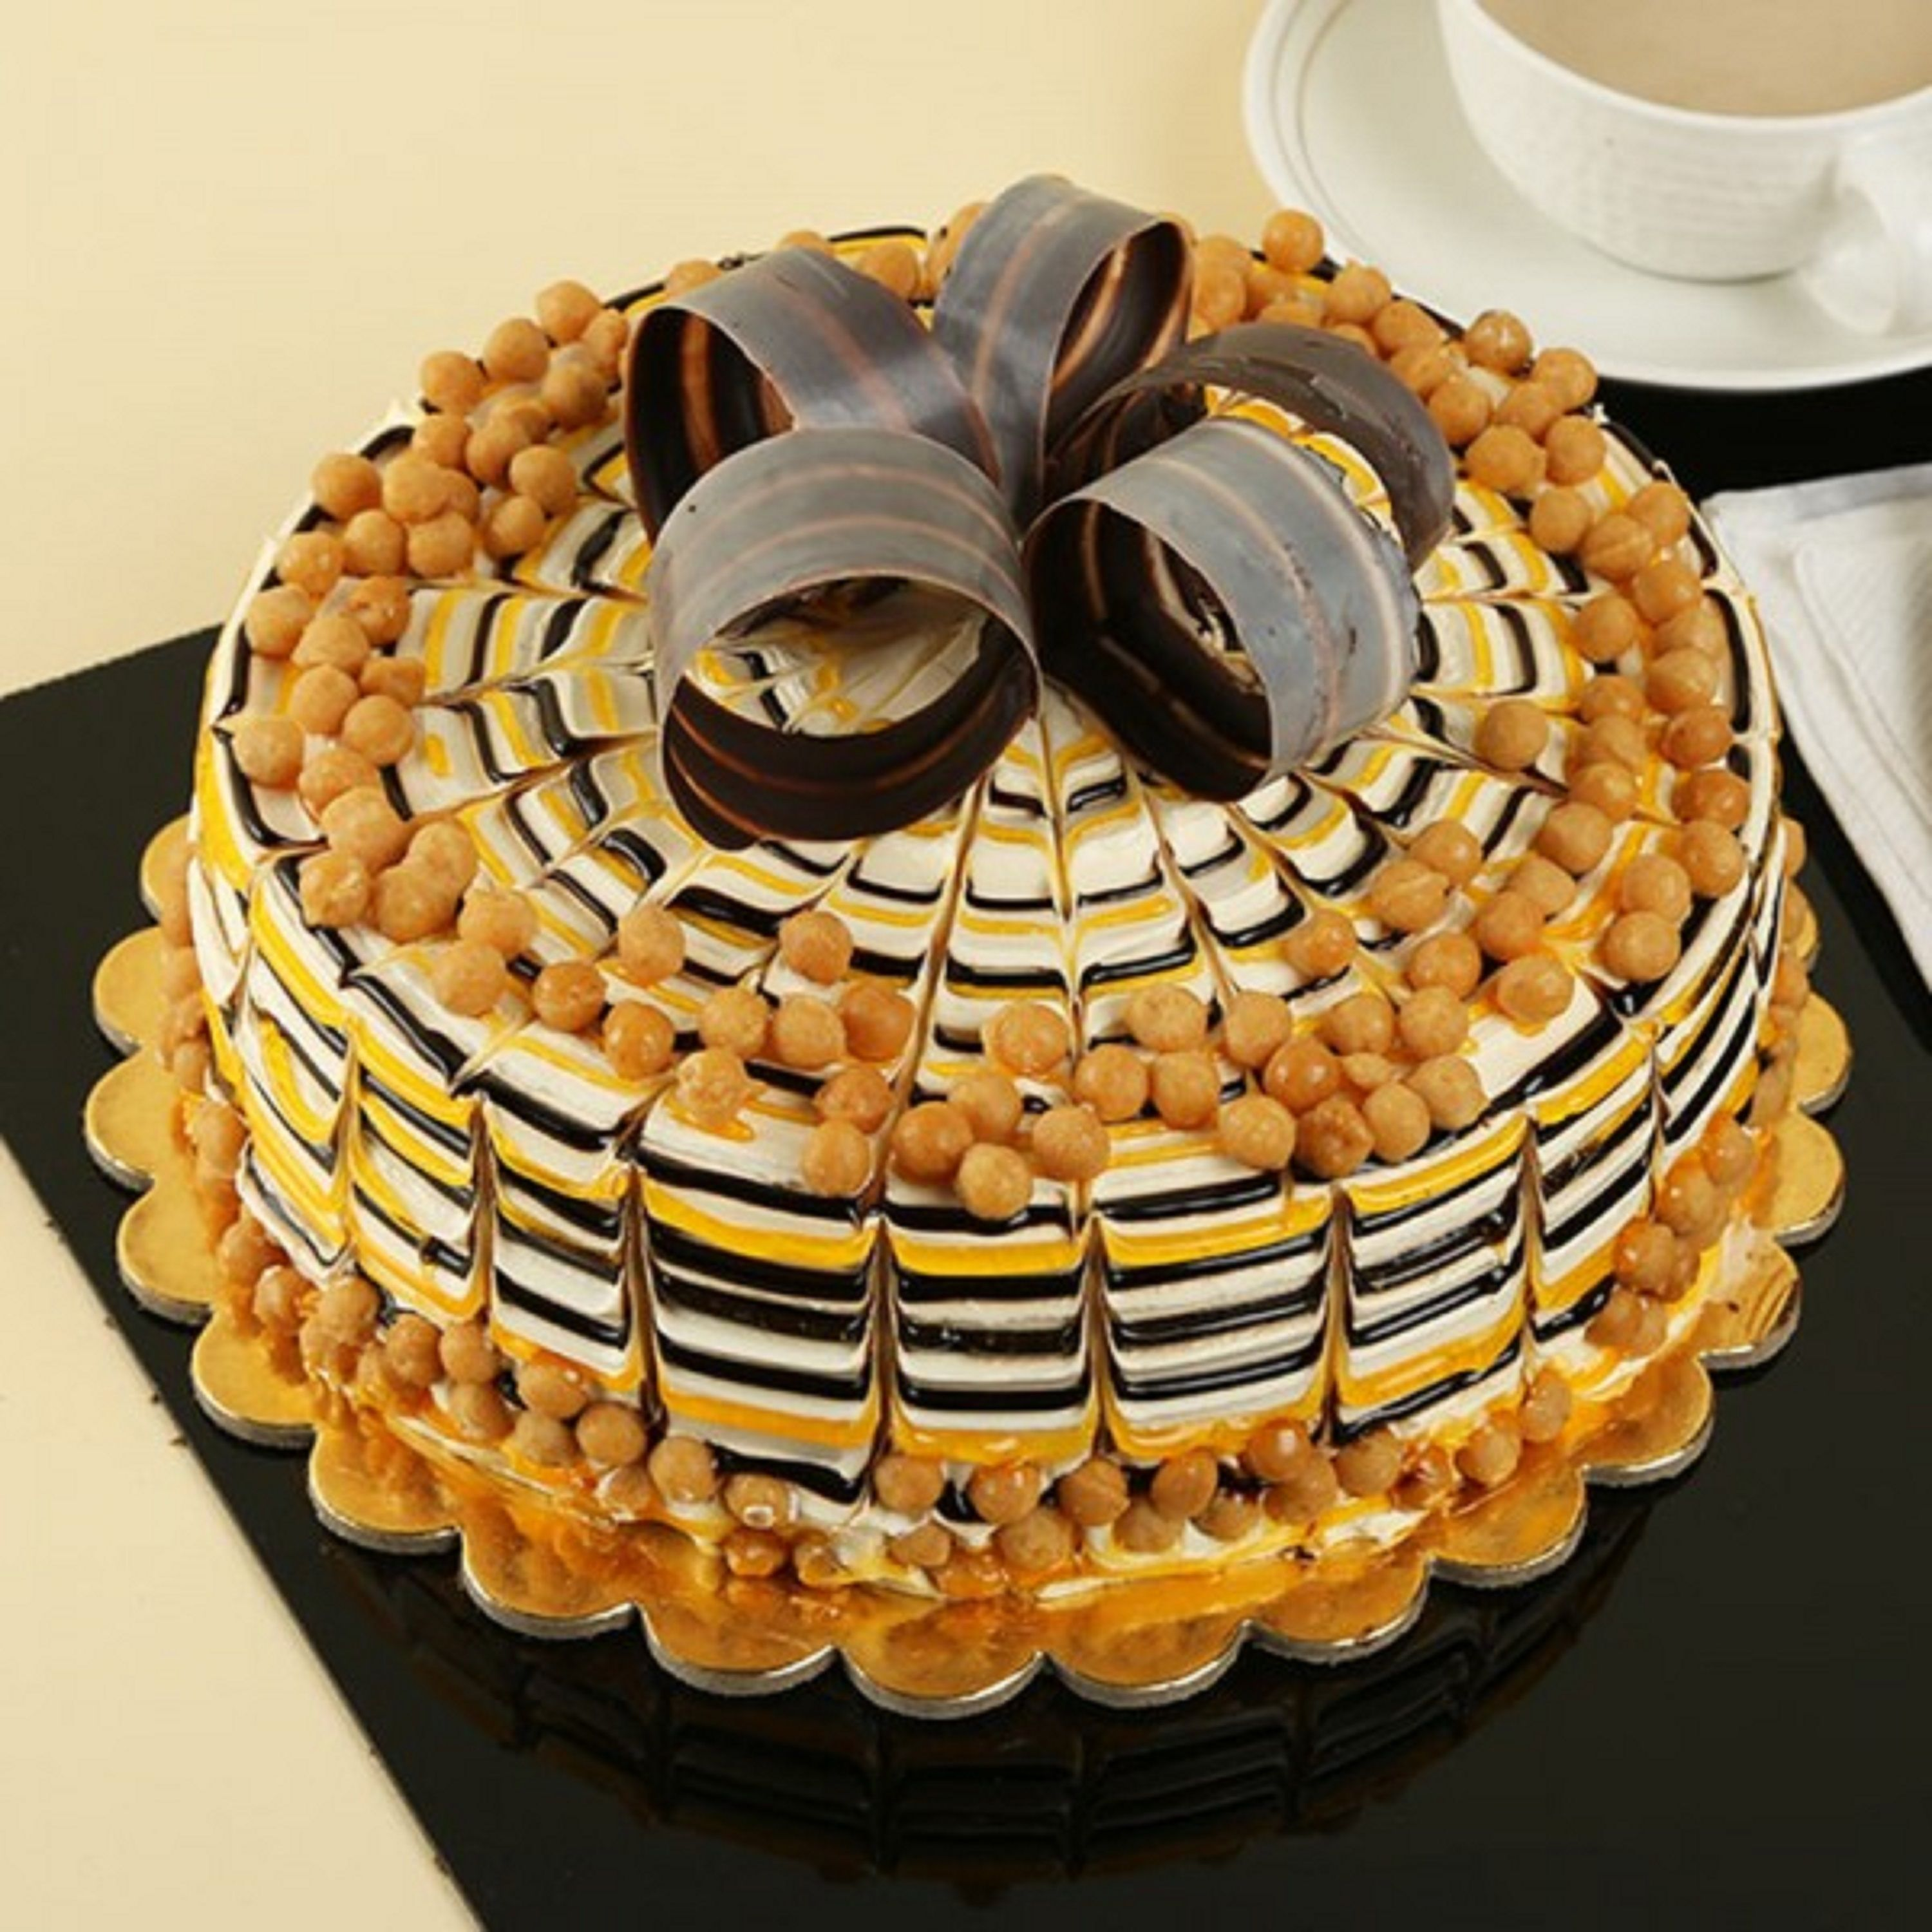 Awe Inspiring Order The Best Cake In Kashipur From Our Ting Website And We Funny Birthday Cards Online Sheoxdamsfinfo